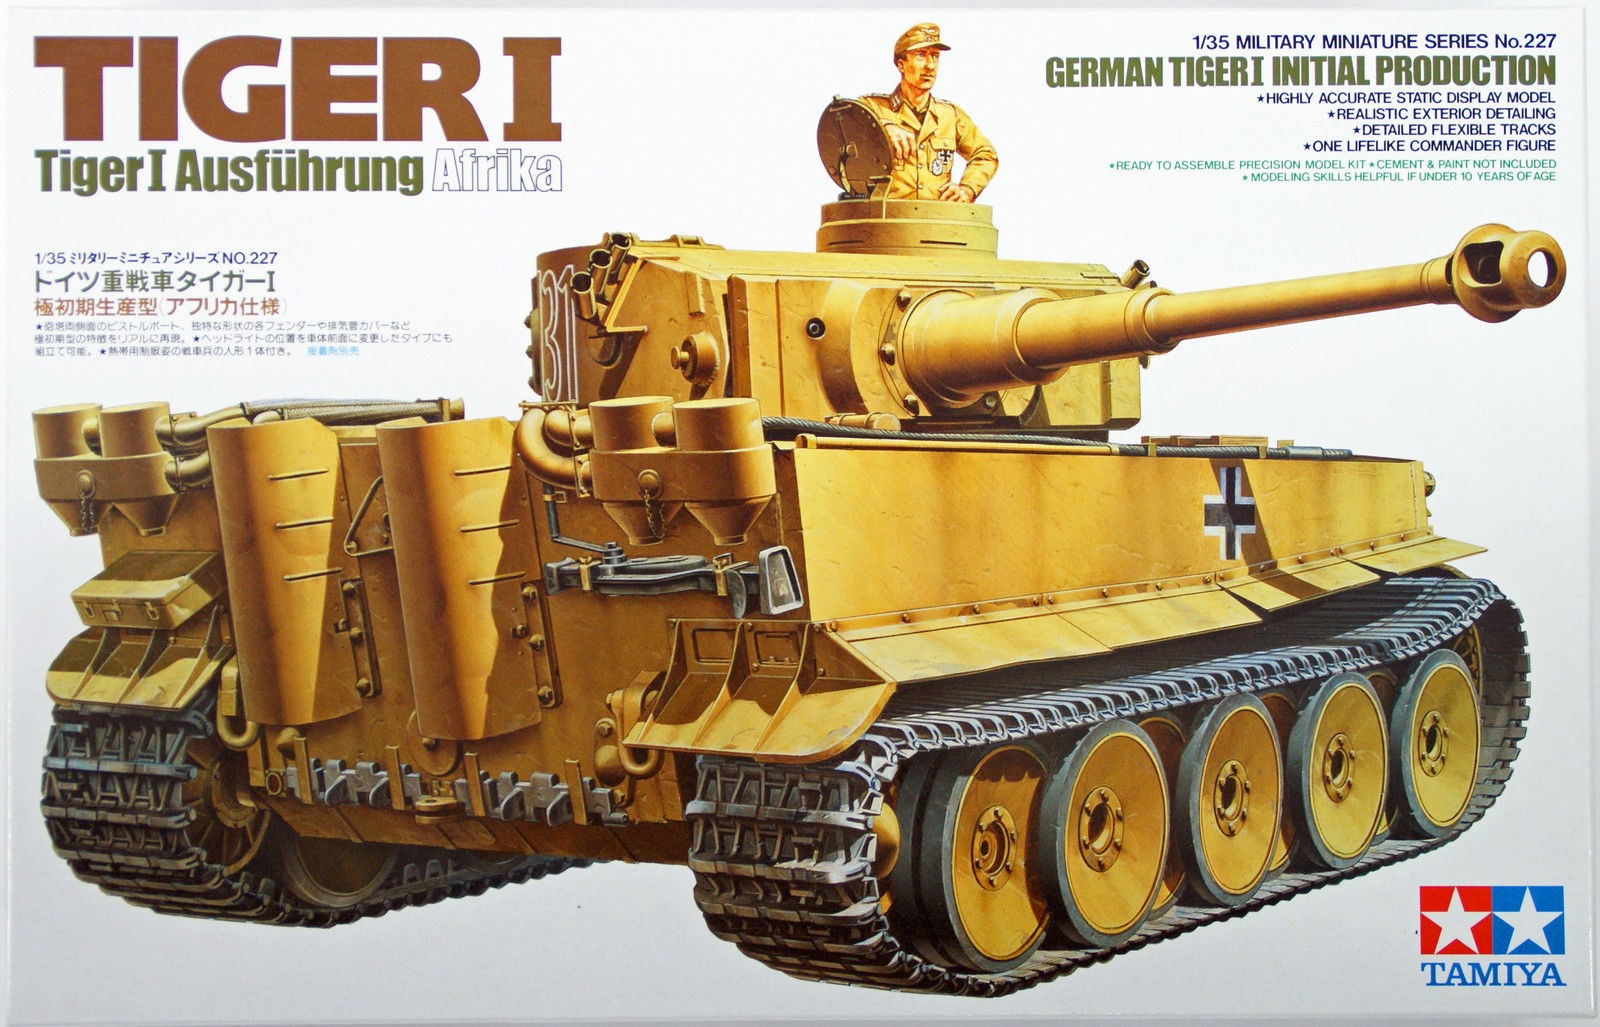 German Tiger I Initial Production - Tamiya 35227 - plastic model kit - 1/35 scale